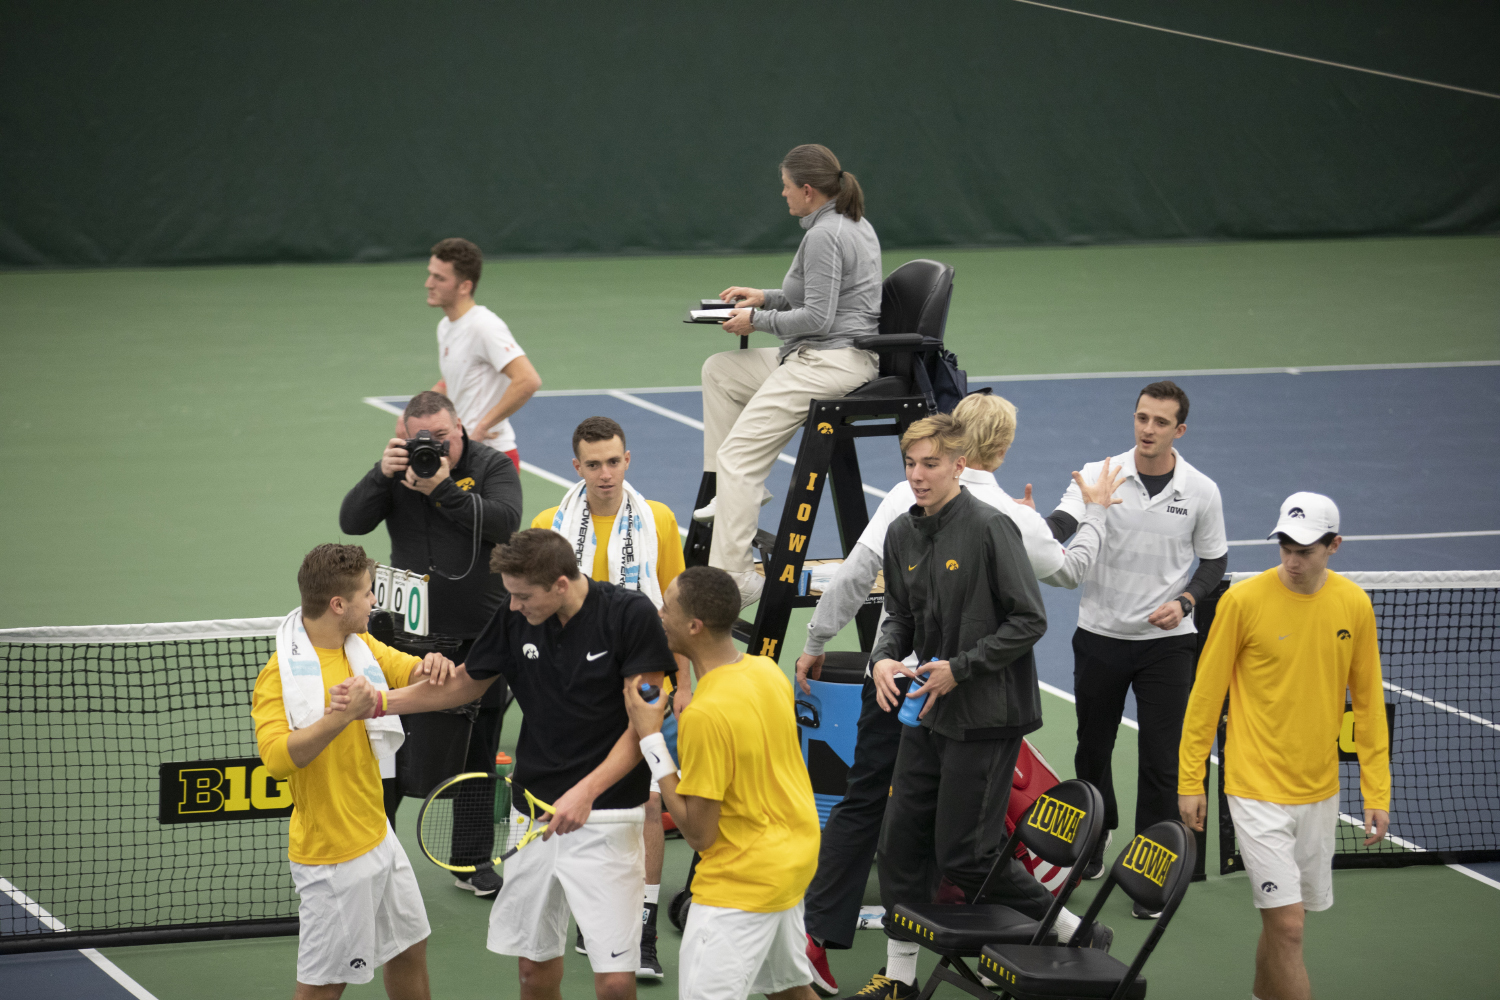 Joe+Tyler+and+his+teammates+celebrate+his+victory+during+the+Men%27s+tennis+match+against+University+of+Utah+at+the+Hawkeye+Tennis+and+Recreation+Complex+on+Feb.+10%2C+2019.+The+Hawkeye+team+defeated+Utah+5-2.+